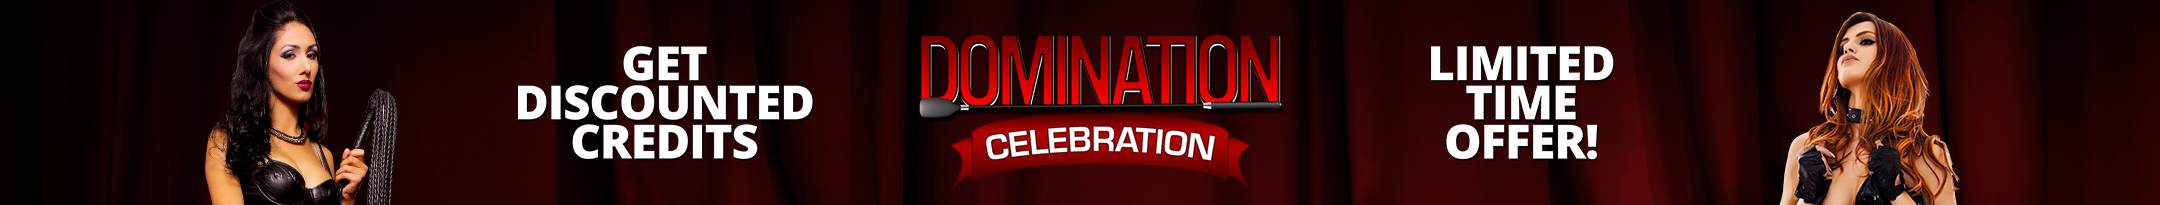 Domination Celebration Discount Promo